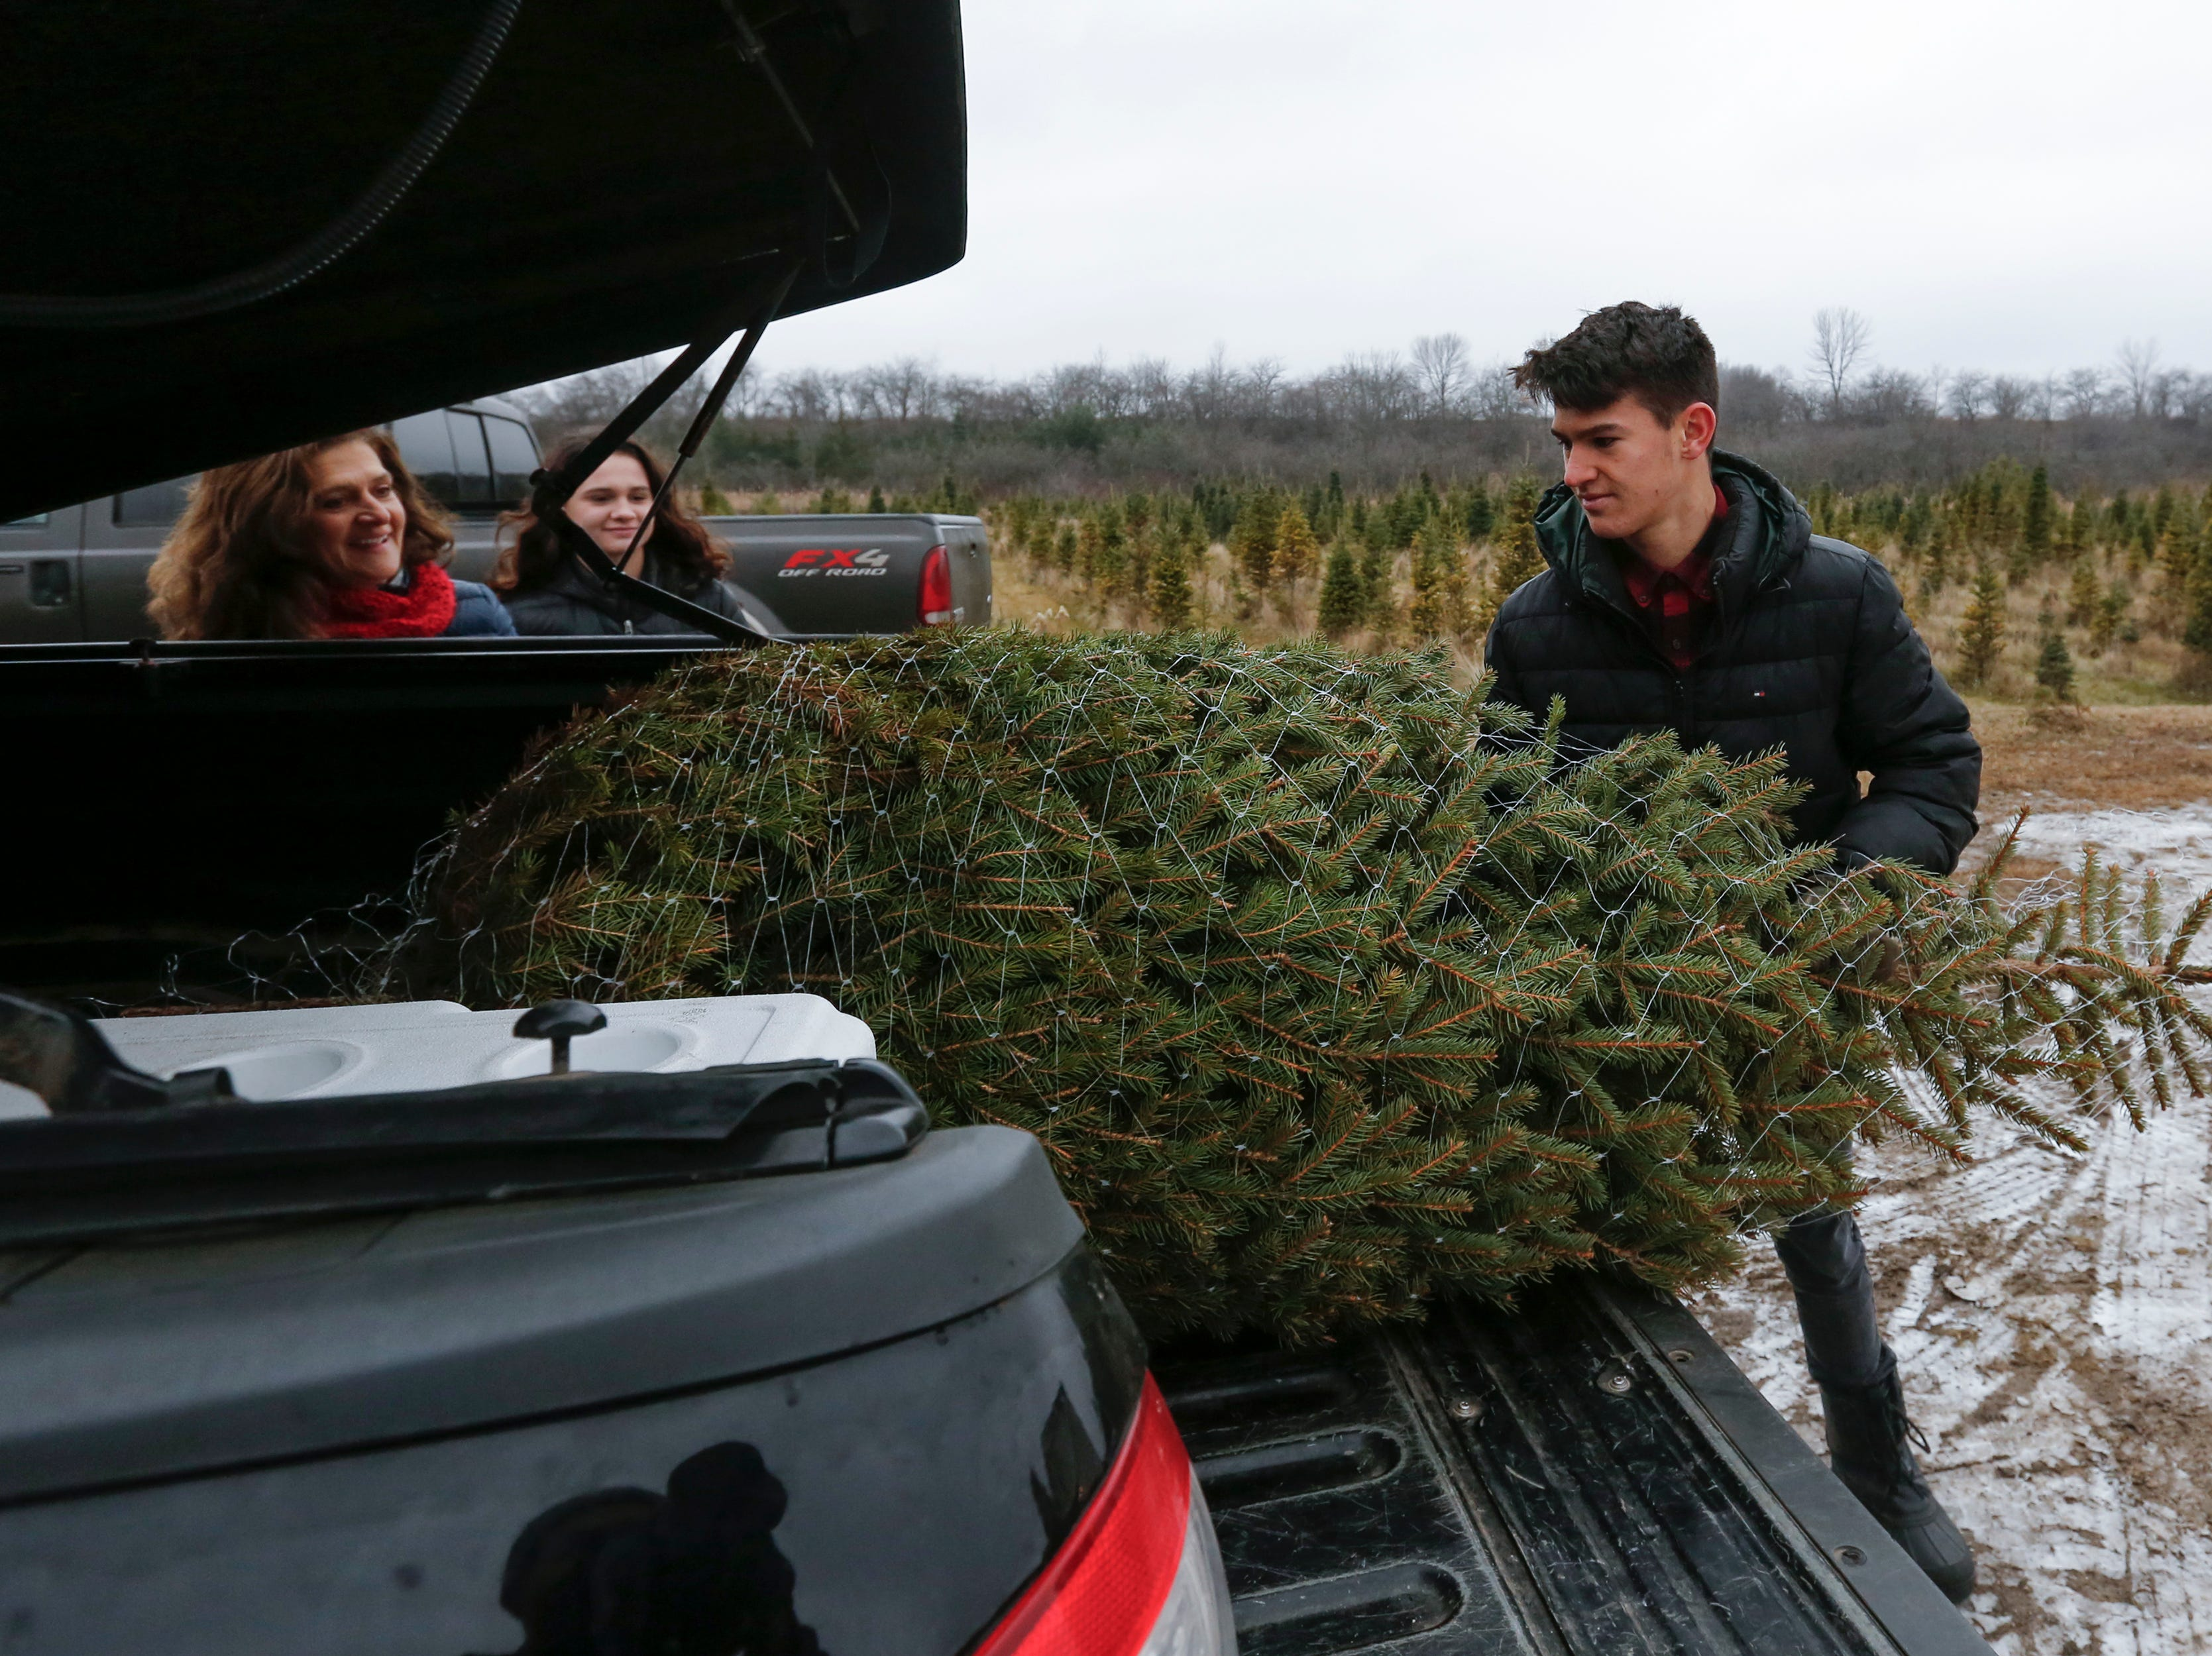 Brady Klarkowski, 15, of Manitowoc, loads his family's hand-cut Christmas tree in the back of their pickup at Taylor Trees Saturday, December 1, 2018, in Mishicot, Wis. Joshua Clark/USA TODAY NETWORK-Wisconsin